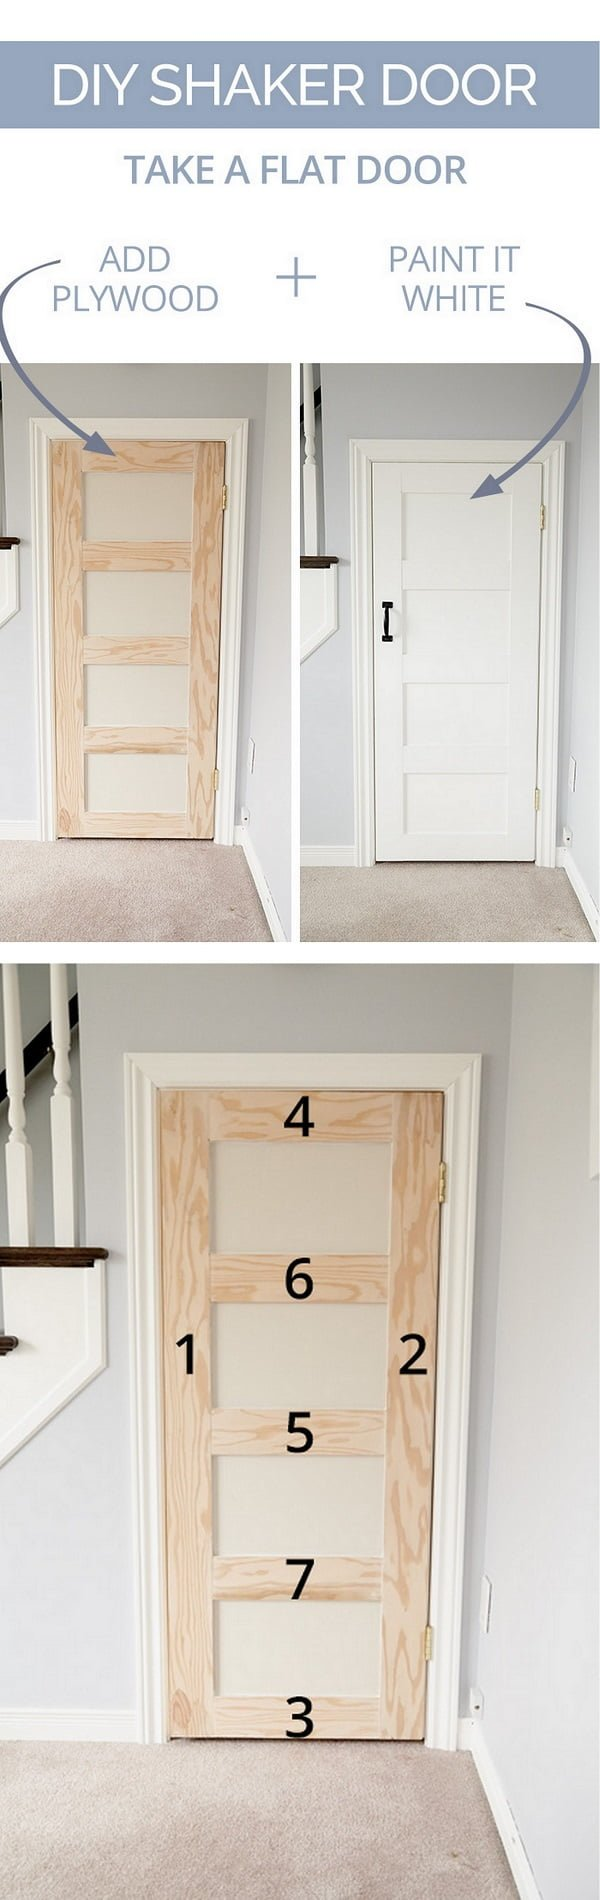 How to make a DIY panel door